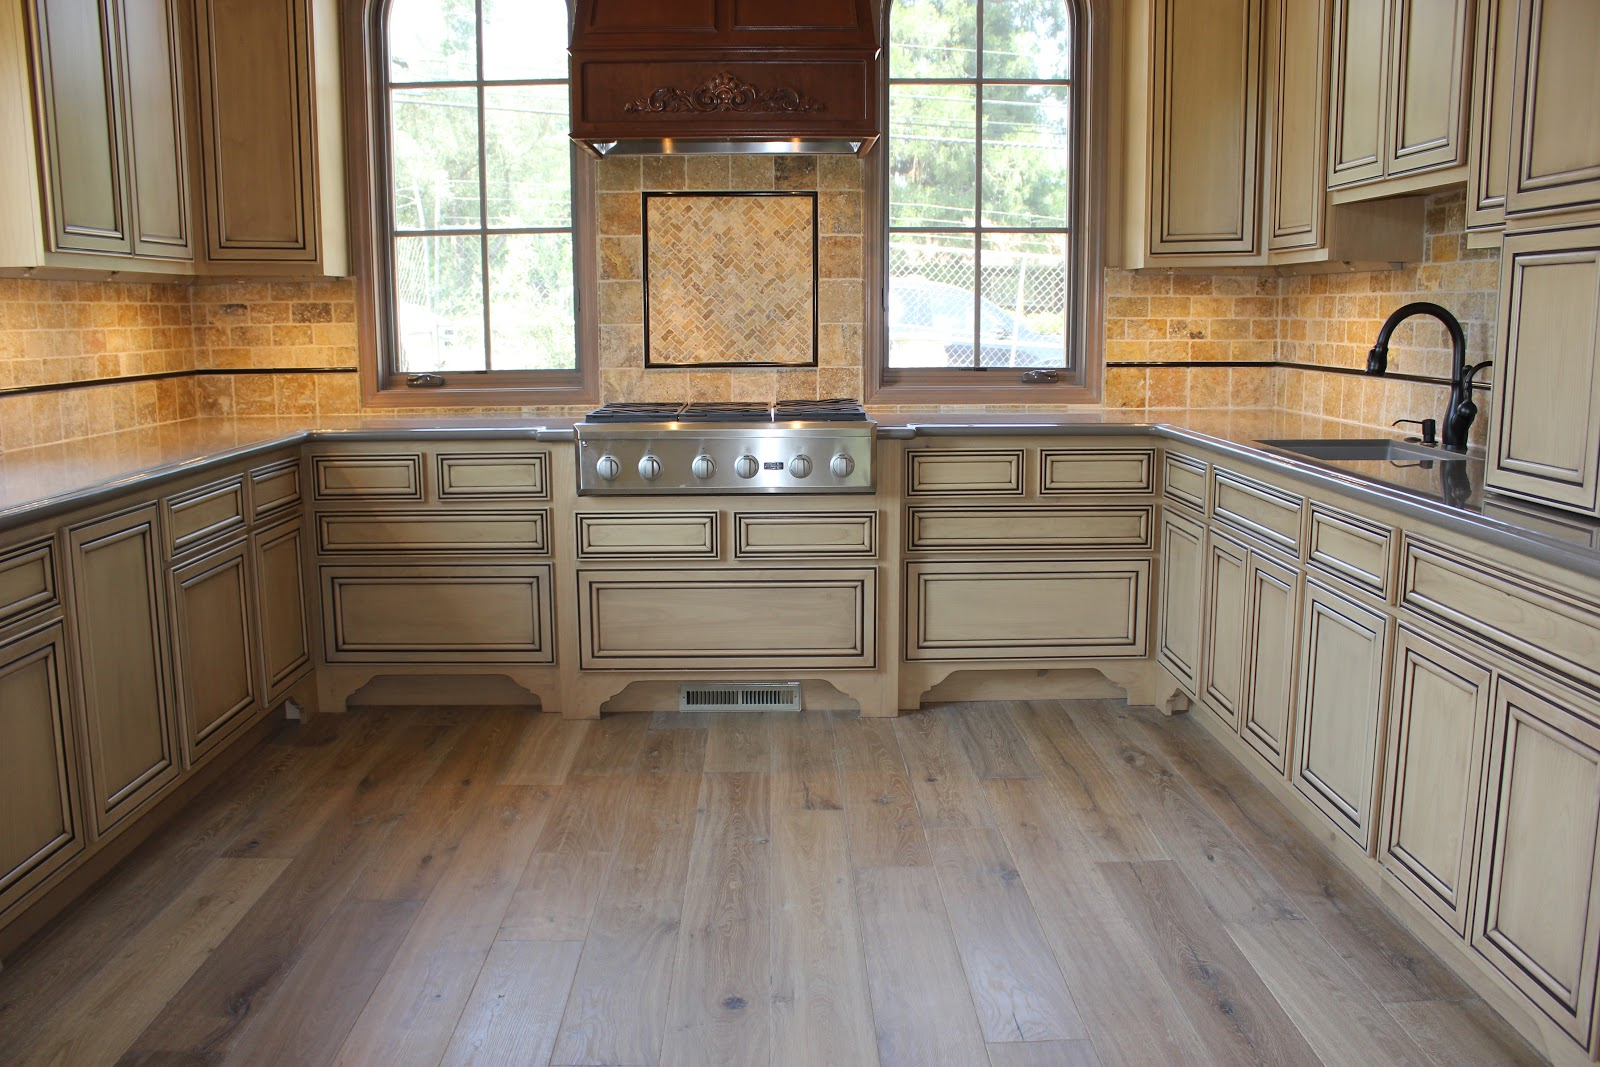 Simas floor and design company hardwood flooring by royal oak for Floor kitchen cabinets